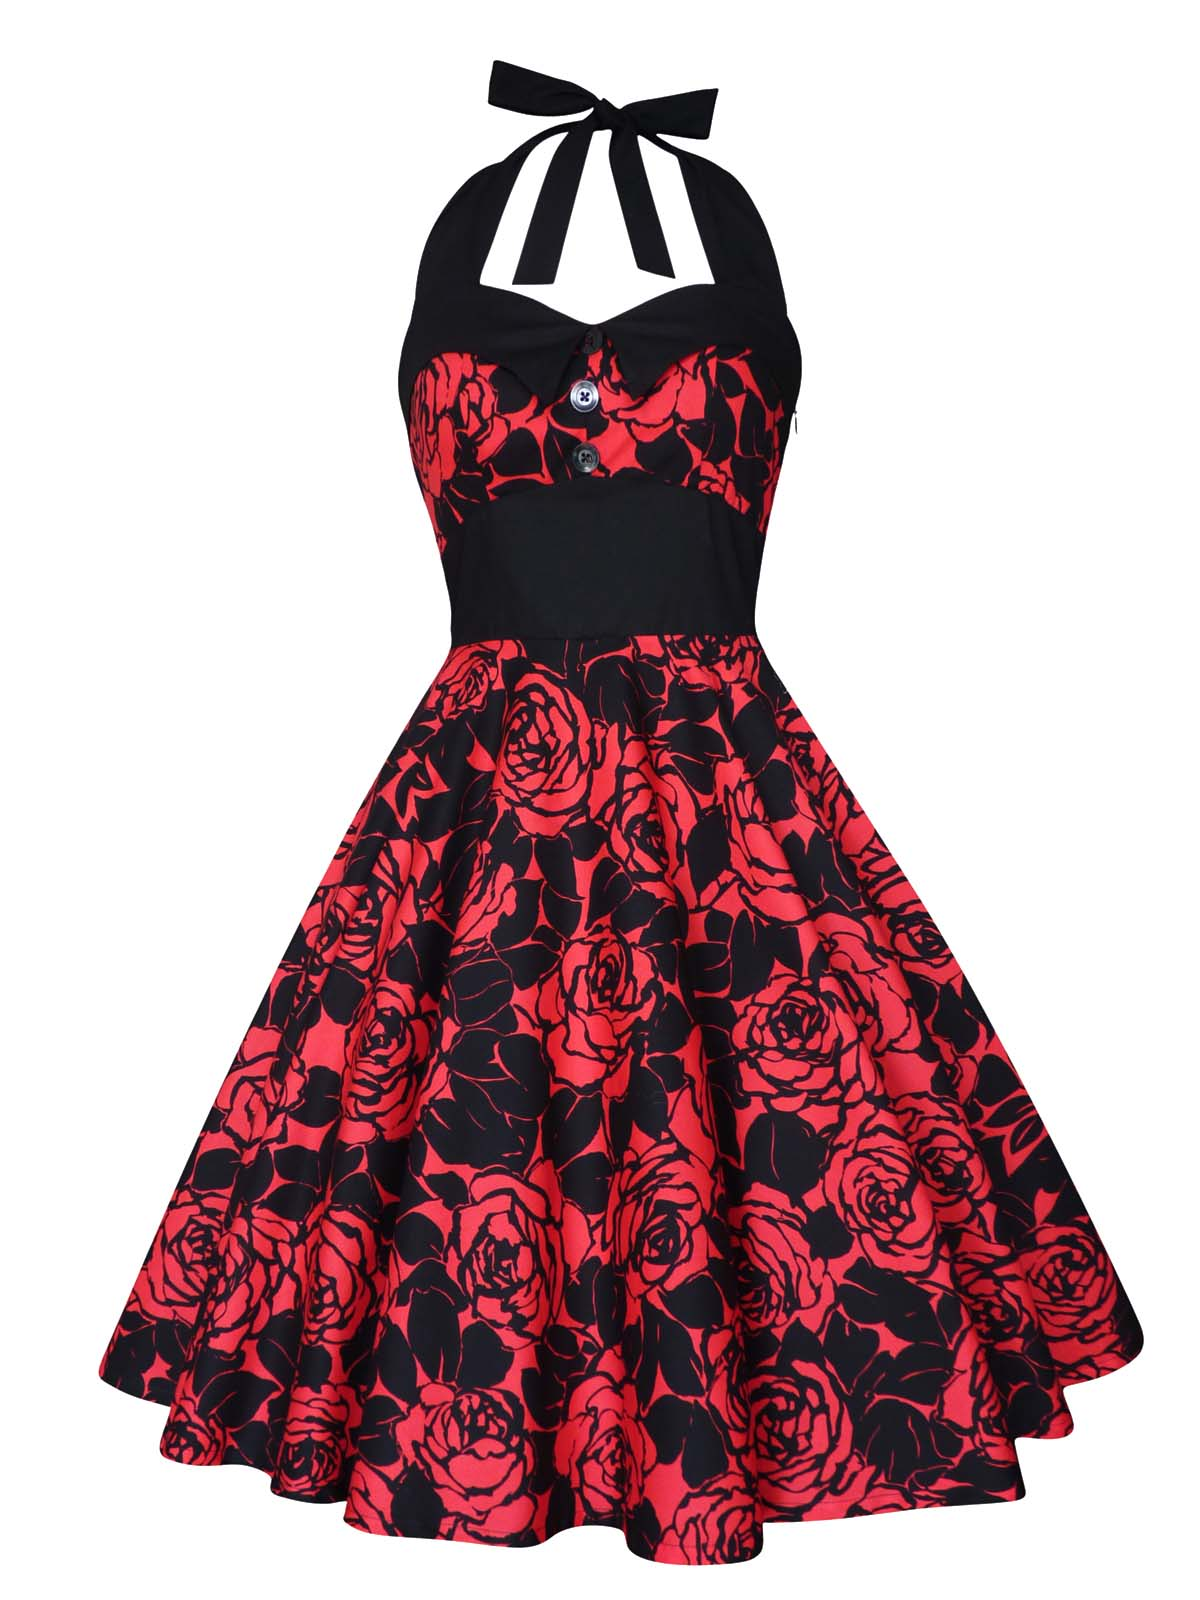 Red Roses Dress Gothic Party Christmas Pin Up Rockabilly